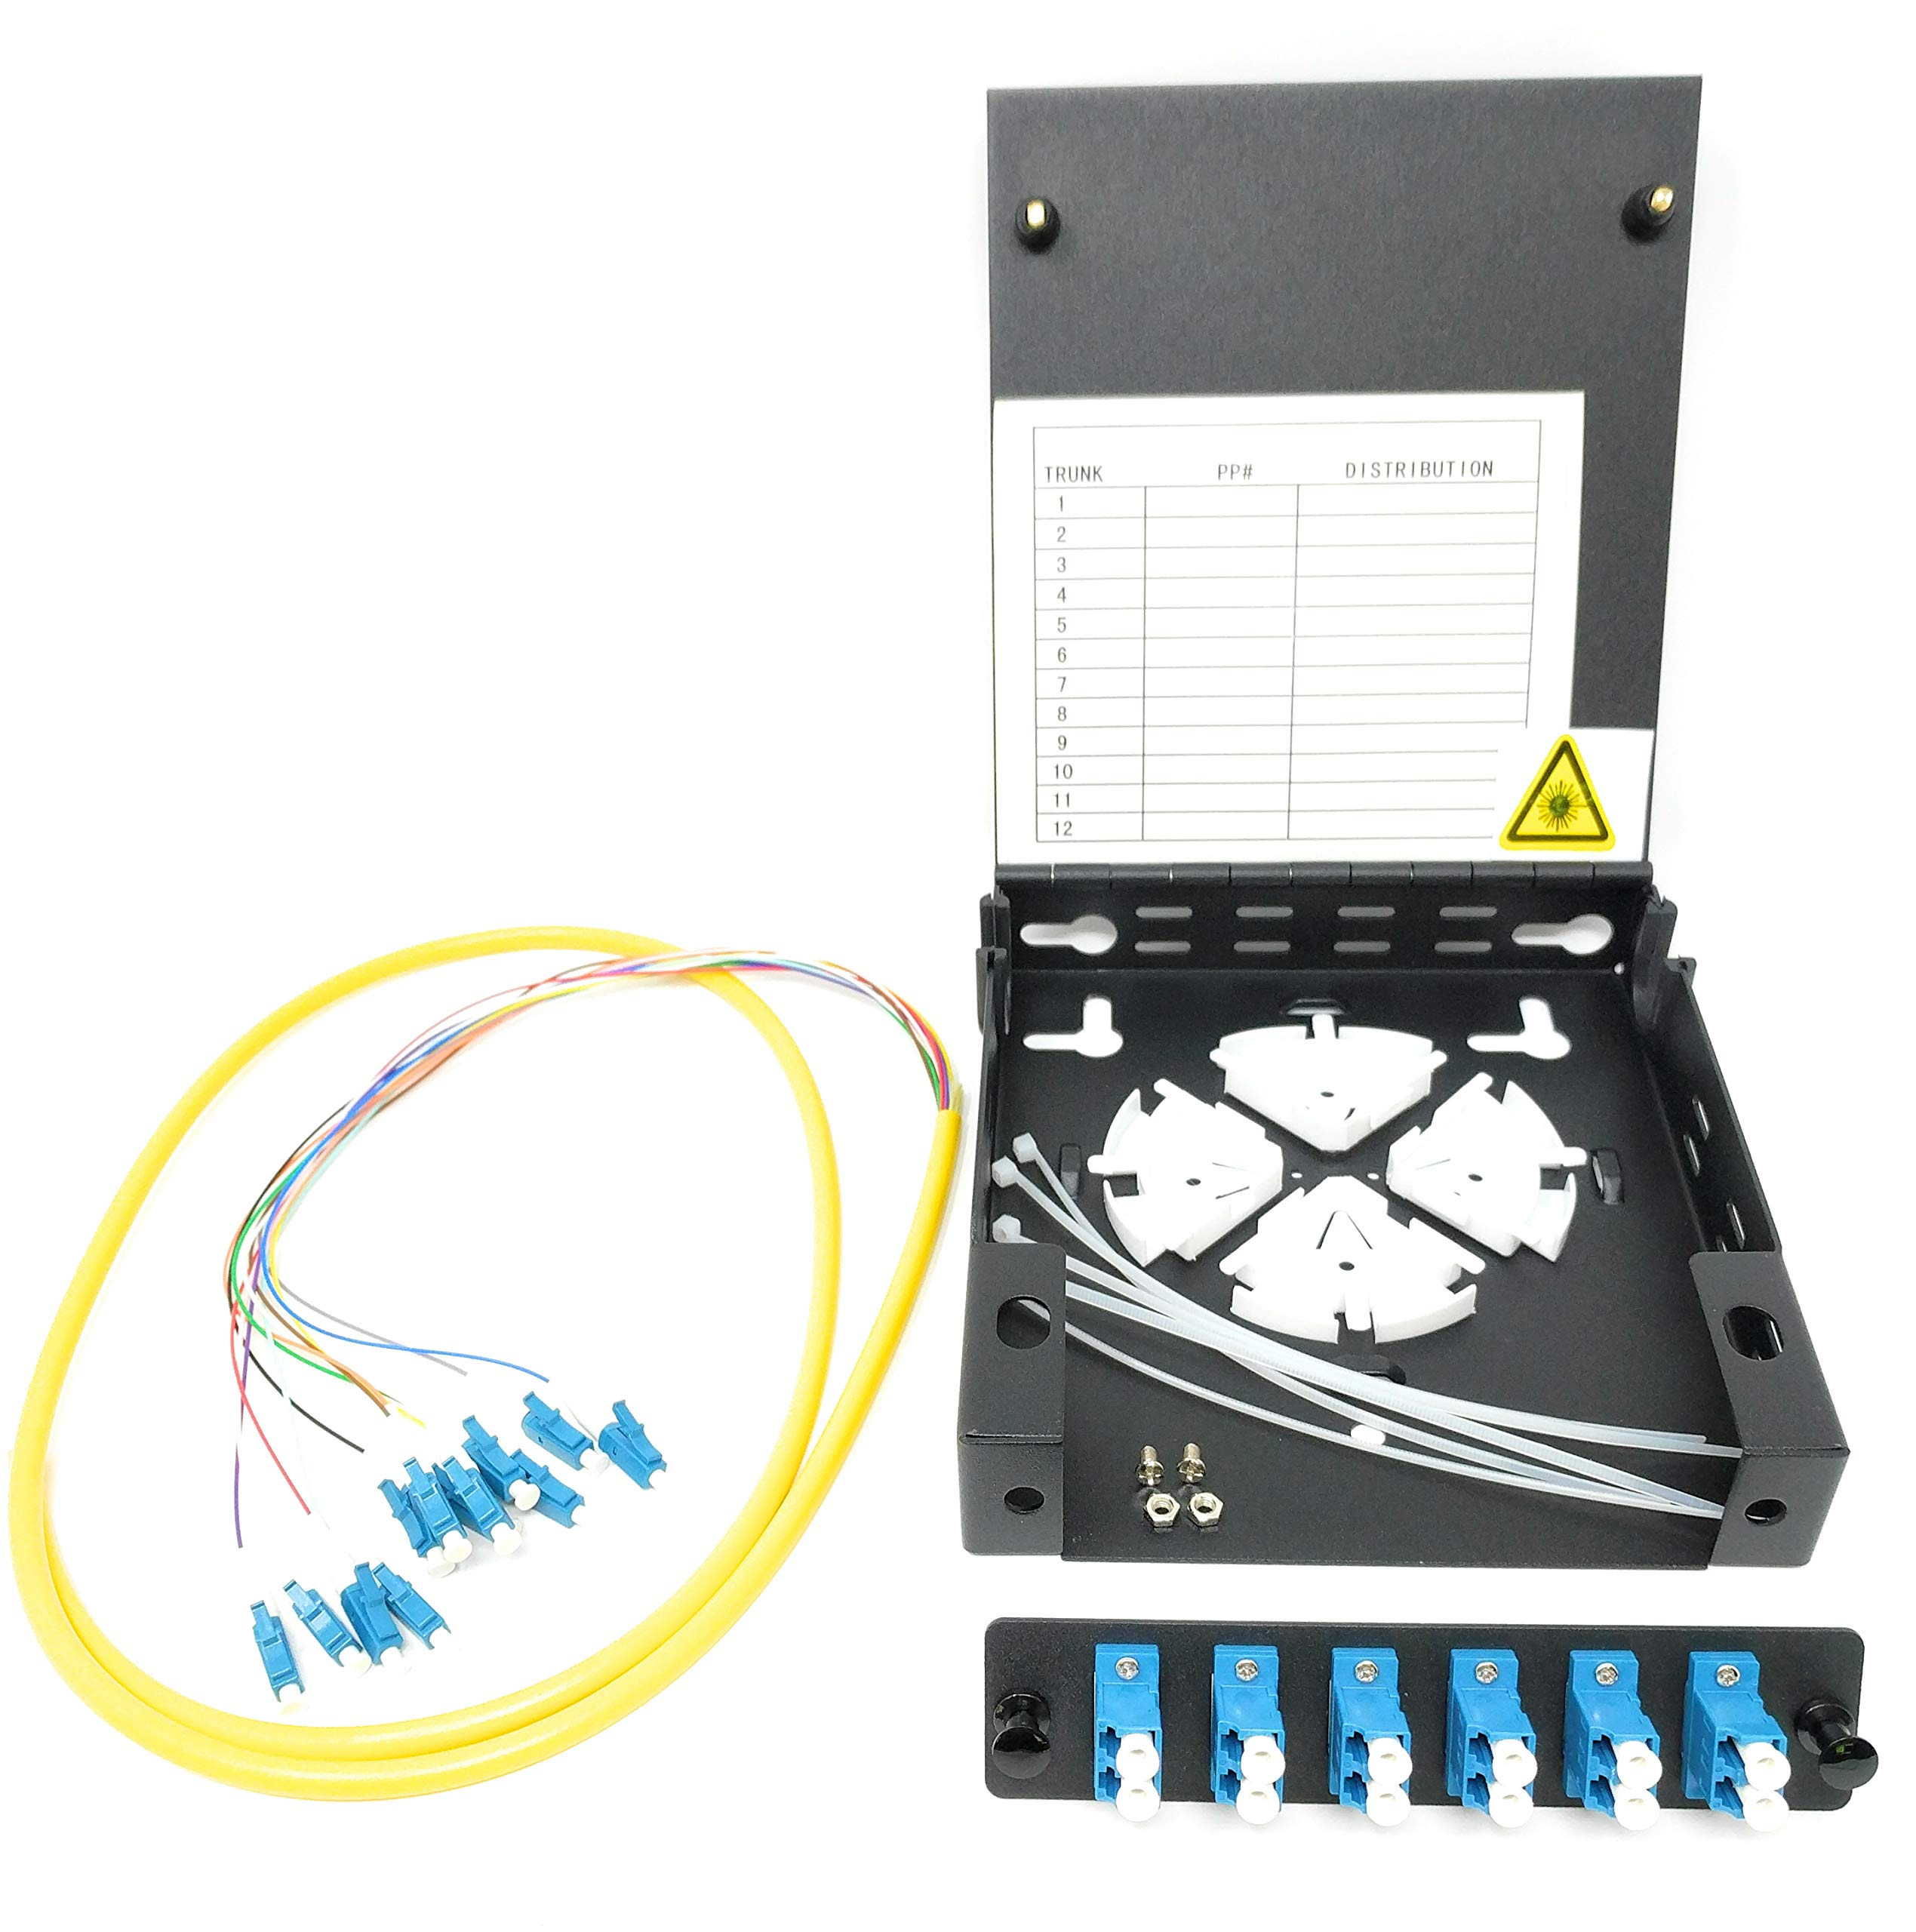 Ultra Spec Cables 12 Port Wall Mount Fiber Enclosure with Spool Singlemode LC-UPC Kit (Includes a 1 Meter 12 Strand LC-UPC Pigtail and 6 Port Duplex LGX Loaded Panel